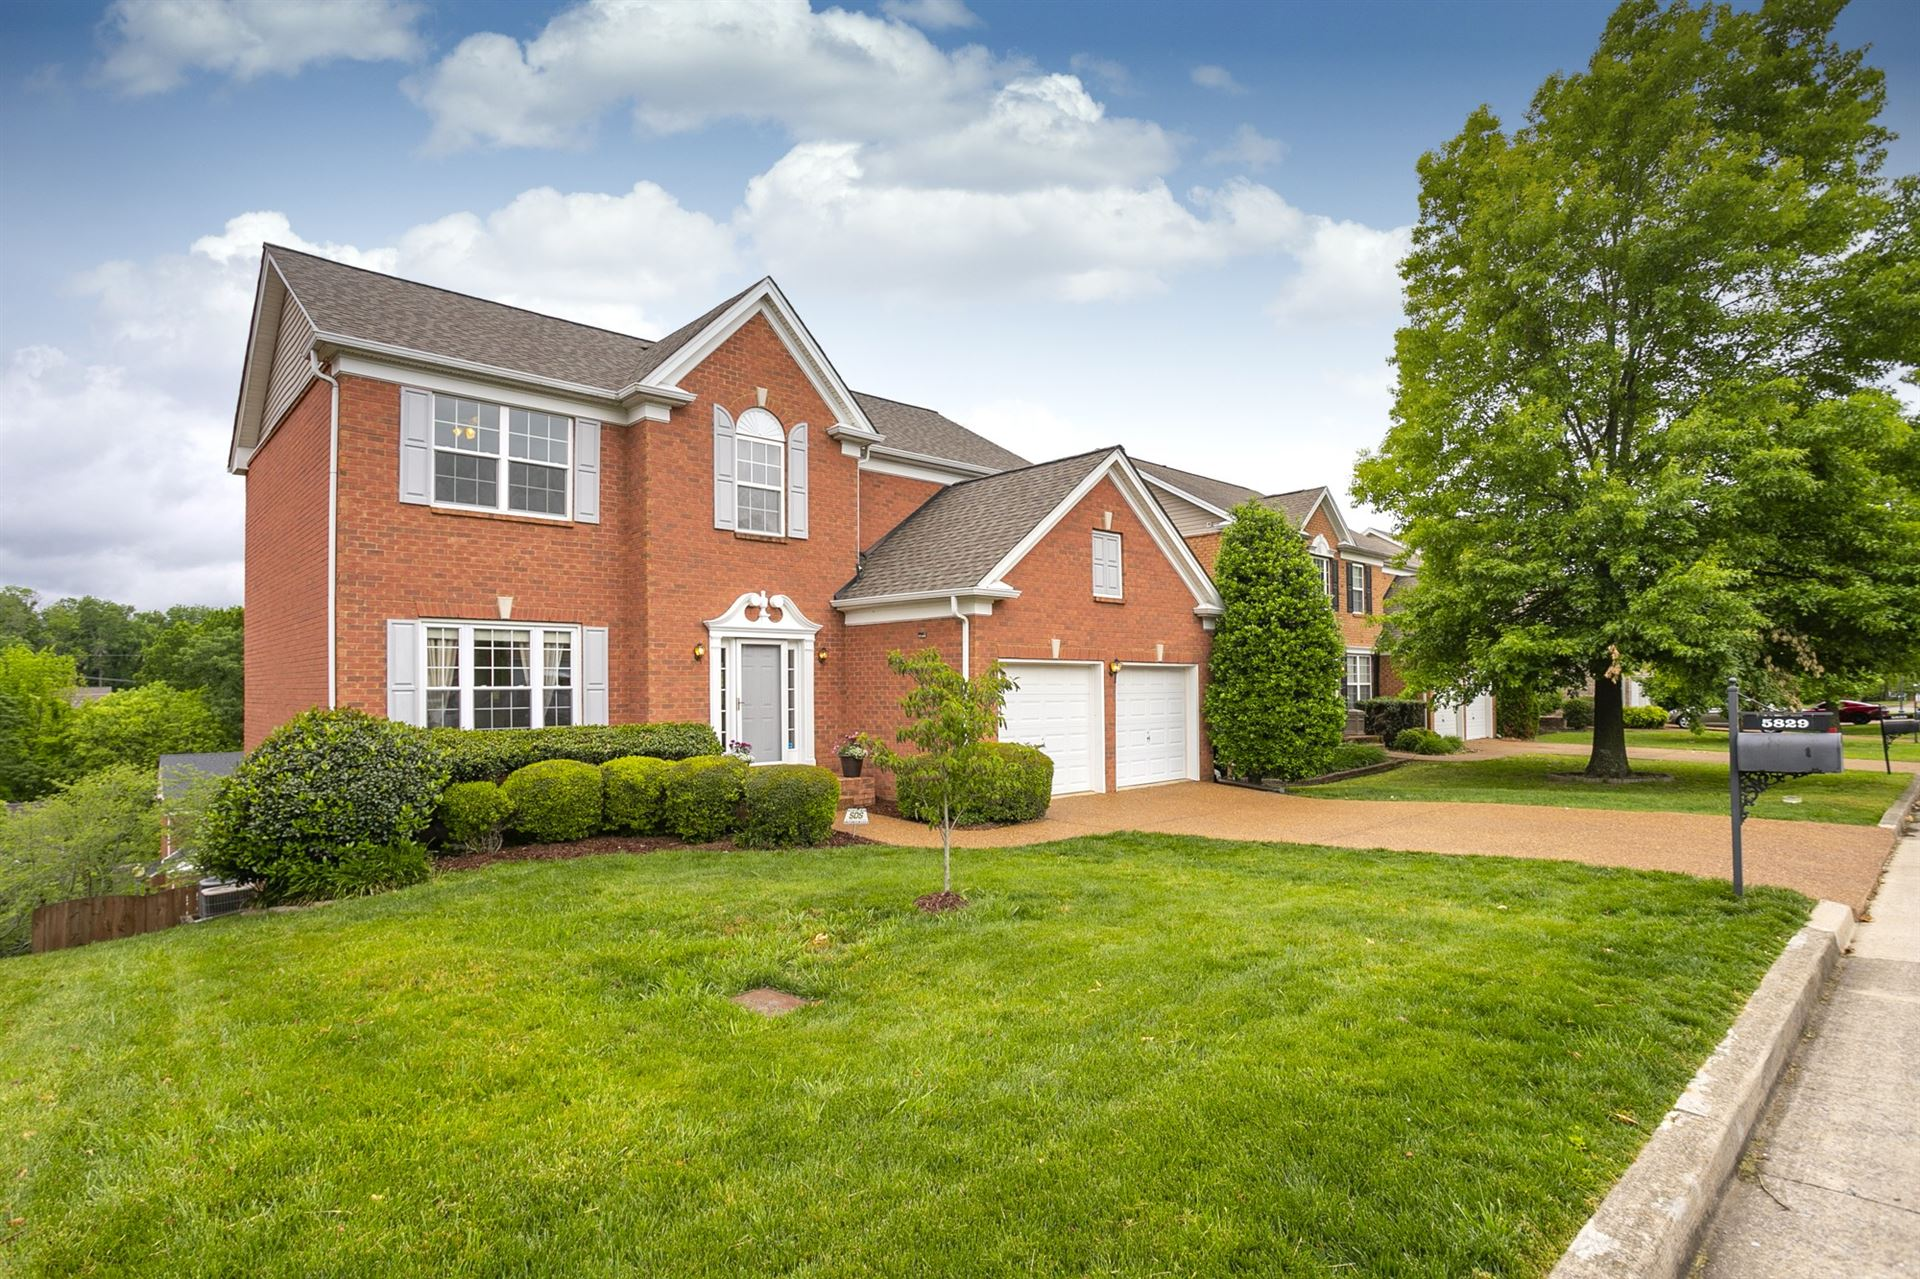 Photo of 5829 Sterling Oaks Dr, Brentwood, TN 37027 (MLS # 2151747)